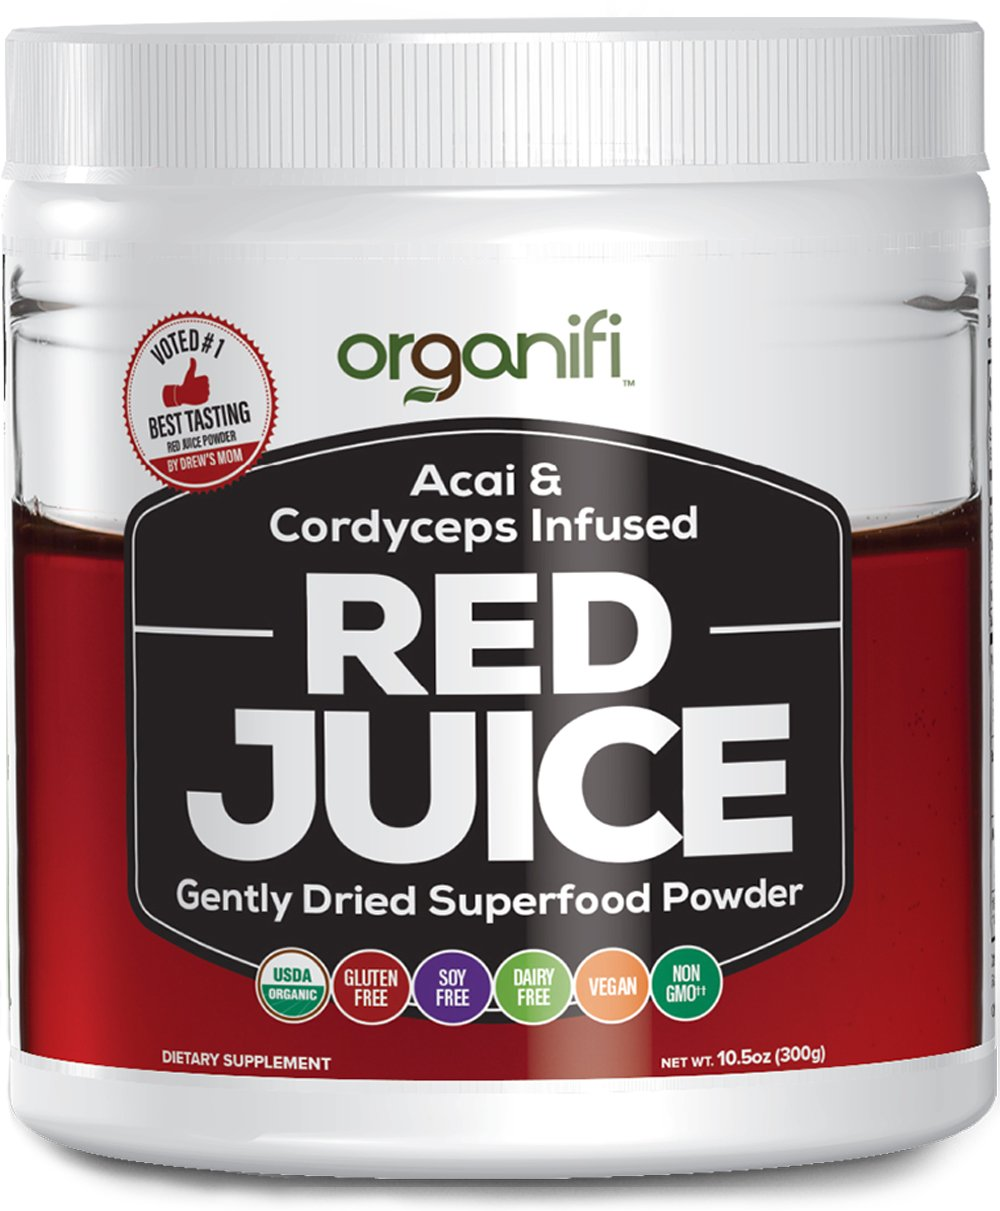 Organic Superfood Powder - Organifi - Red Juice Super Food Supplement - 30 Day Supply - USDA Certified Organic, Boosts Metabolism, and Reverses The Signs Of Aging